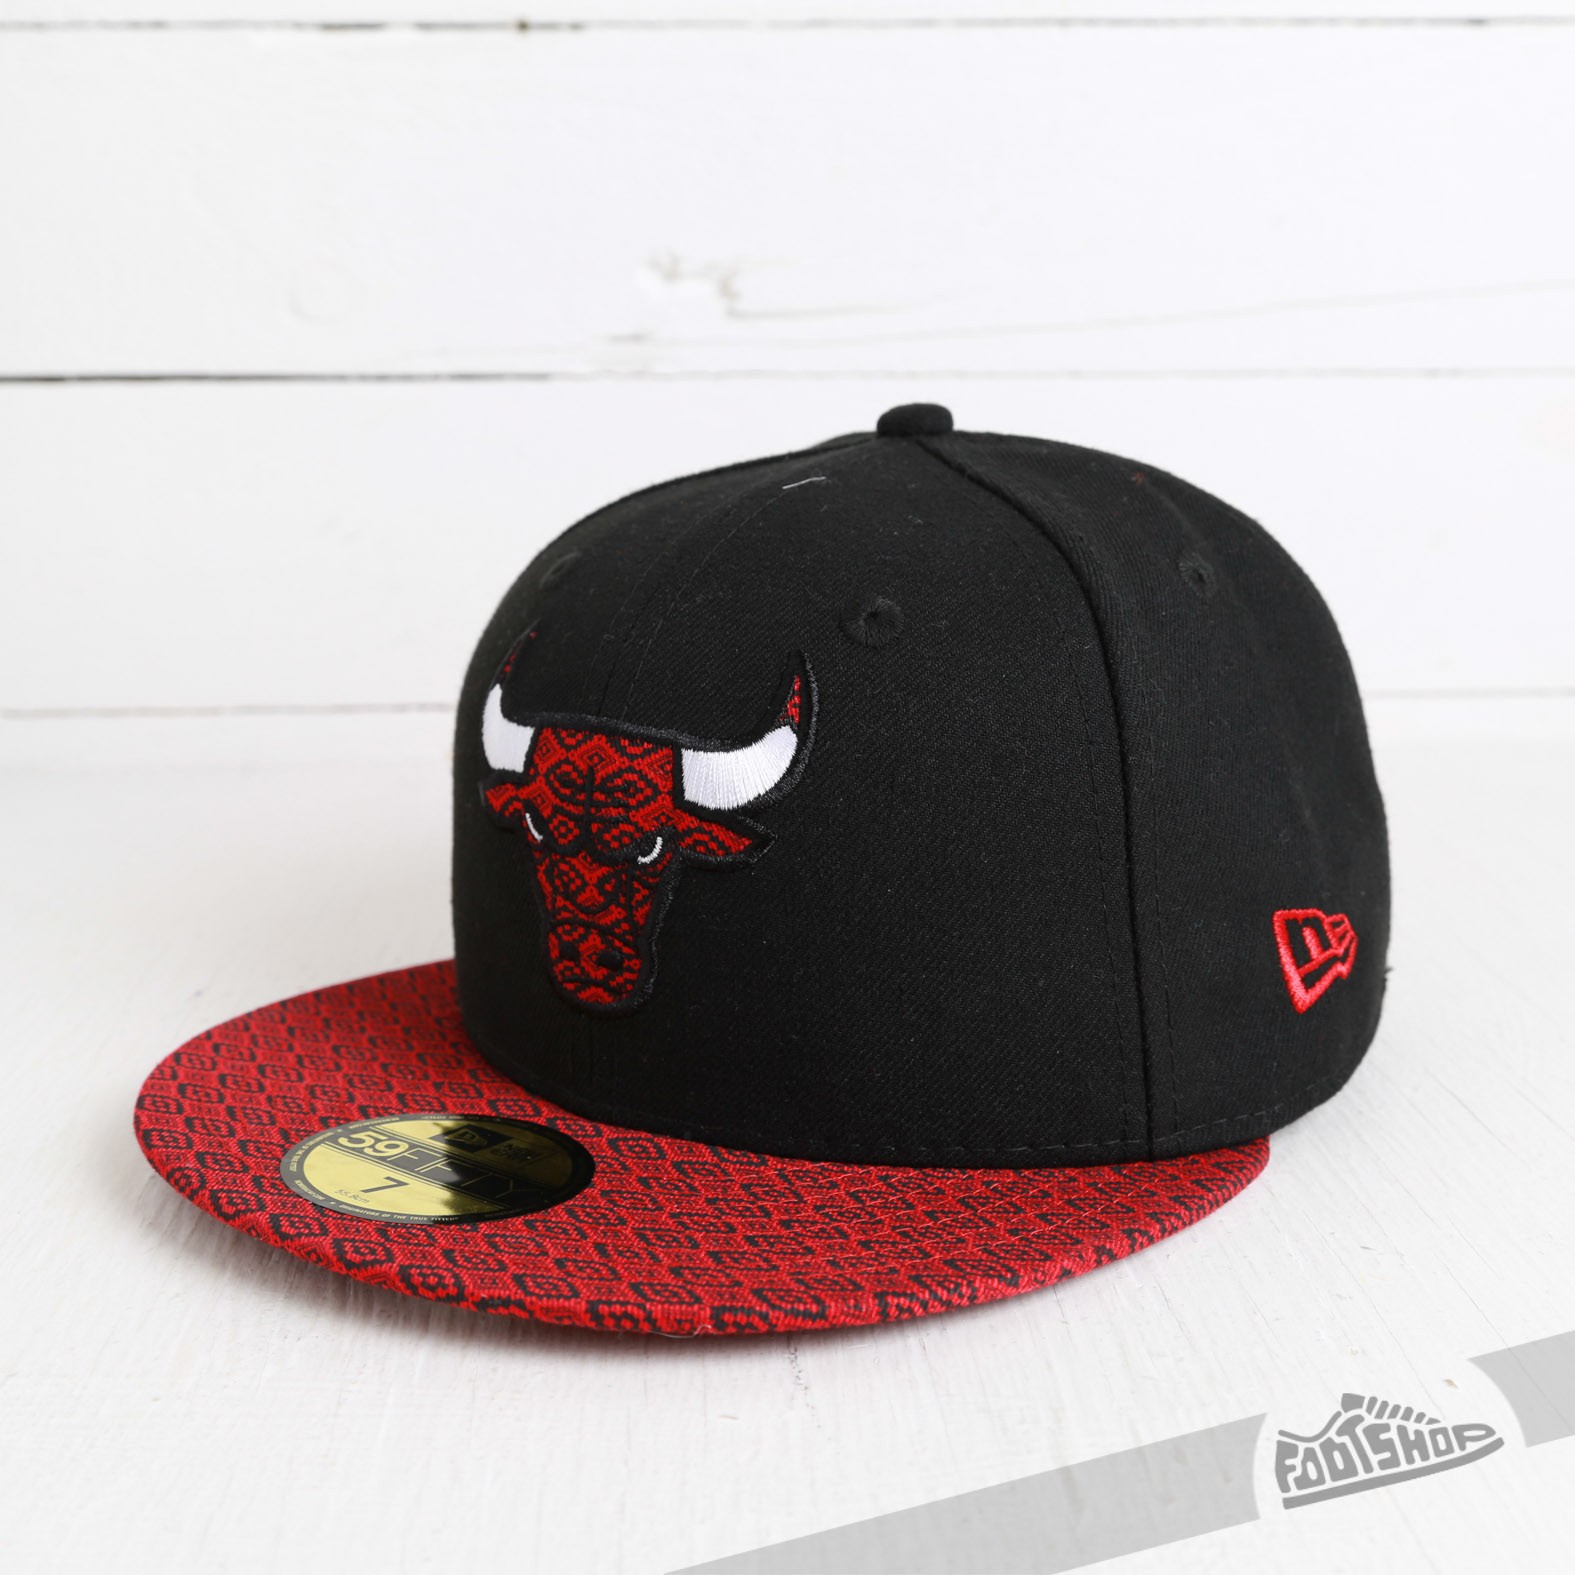 New Era 59FIFTY Fitted Visor Fit CHIBUL